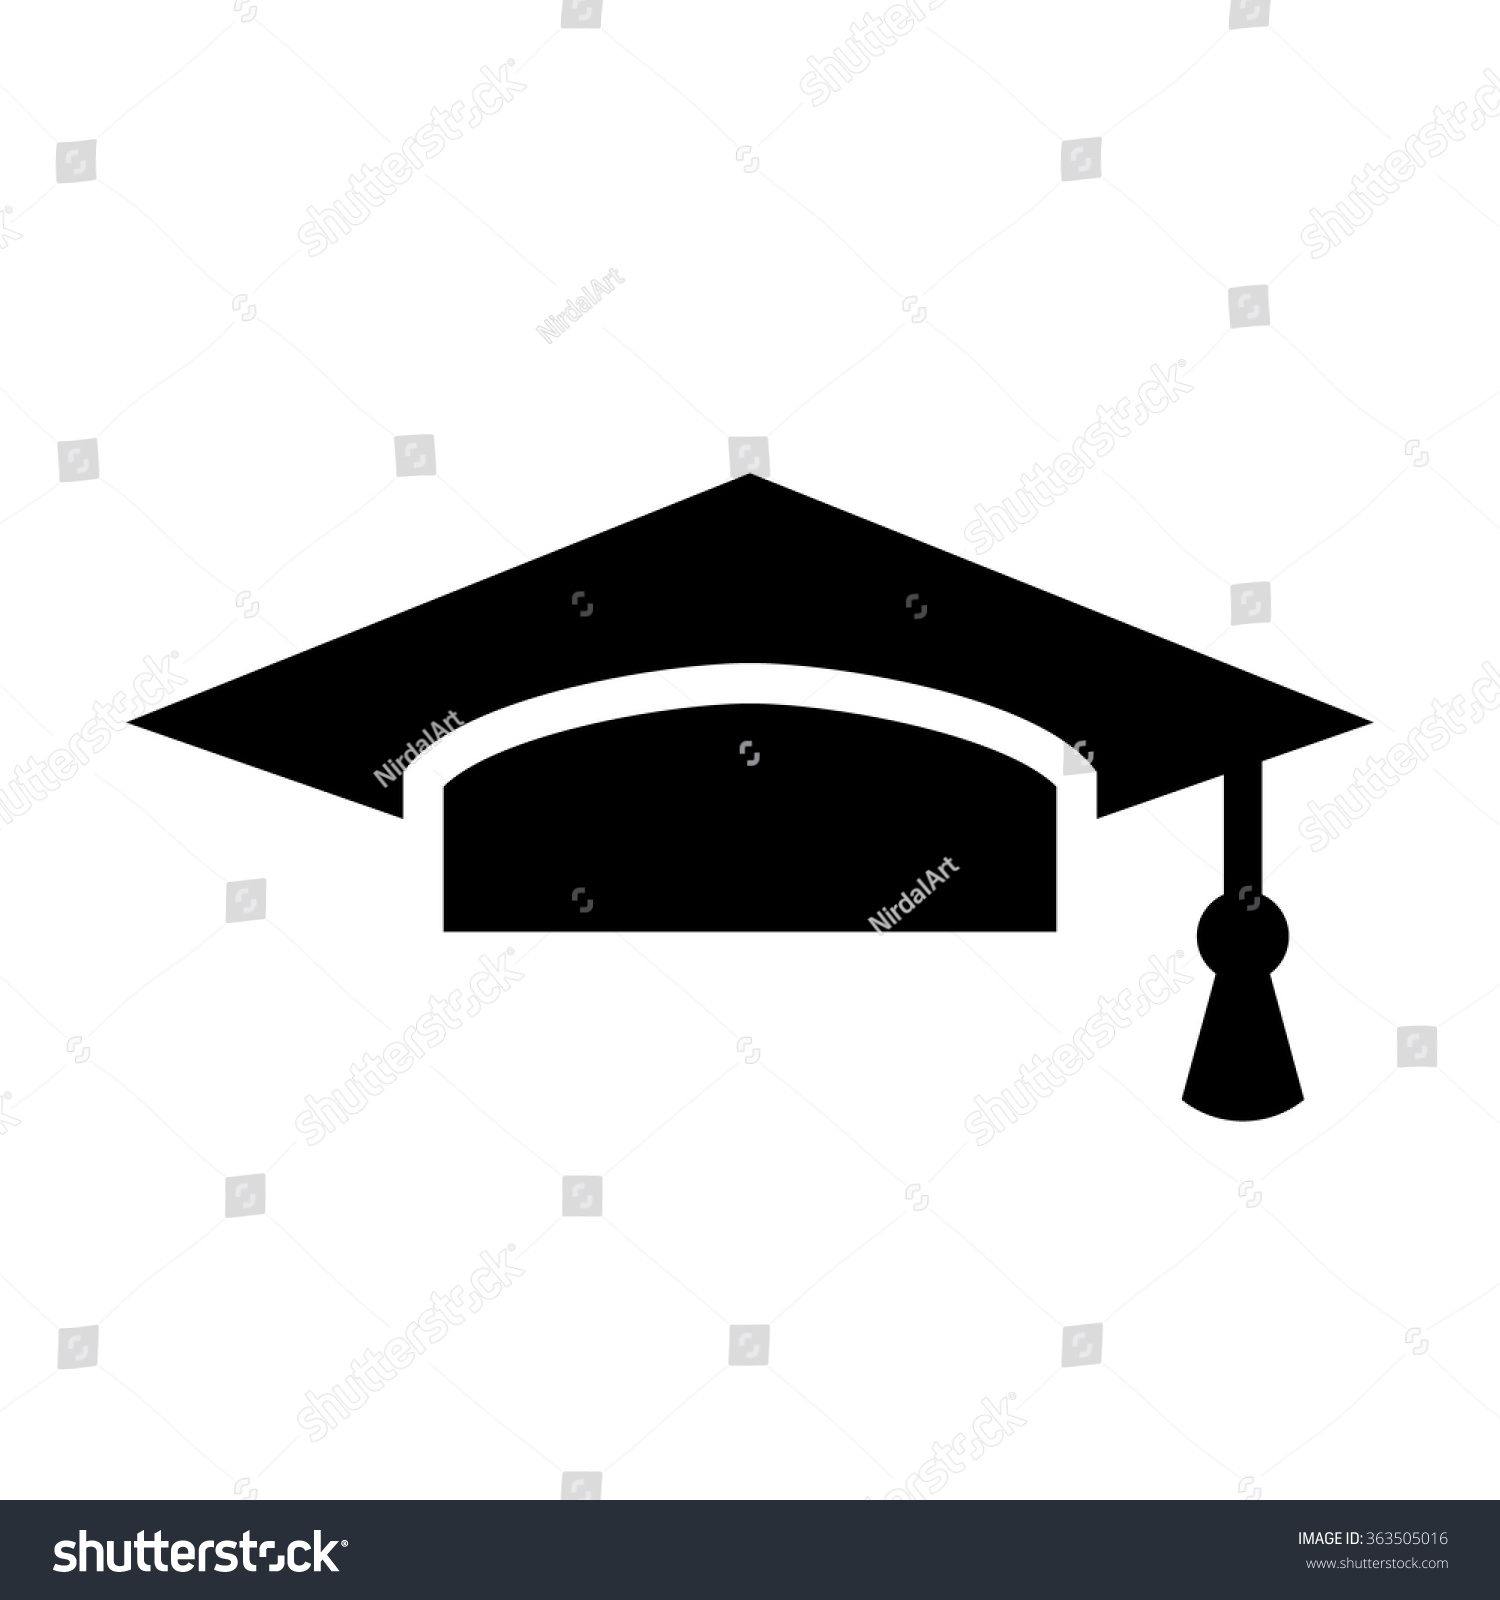 Graduation Cap Vector Icon - 363505016 : Shutterstock